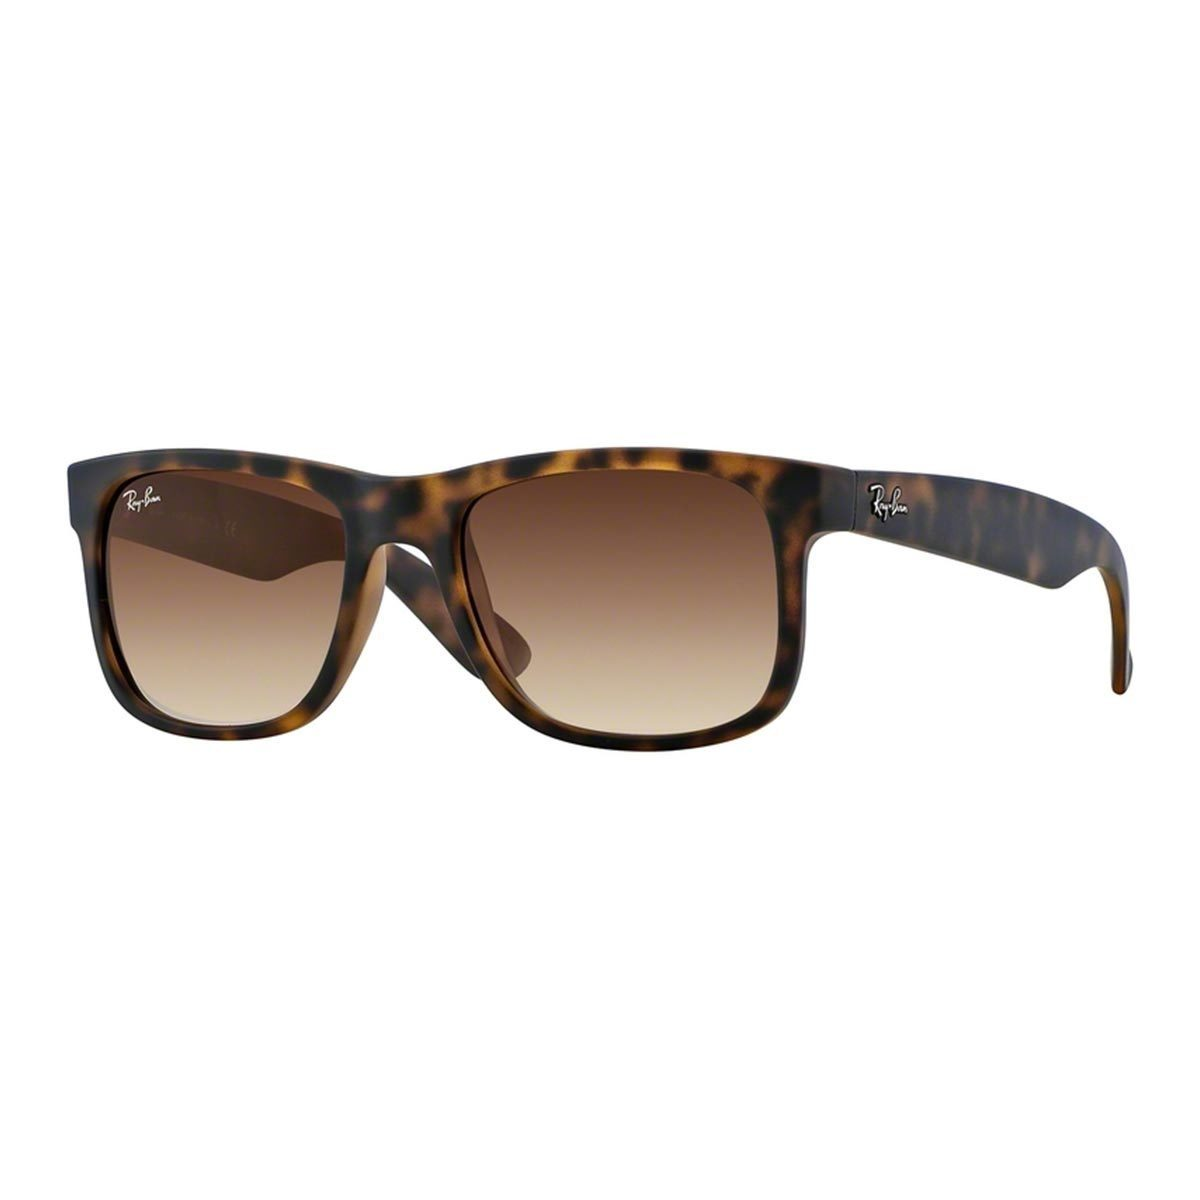 9307e626fe Shop Ray-Ban Justin Matte Tortoise Frame Brown Gradient 55mm Wayfarer  Sunglasses - Free Shipping Today - Overstock - 9221980